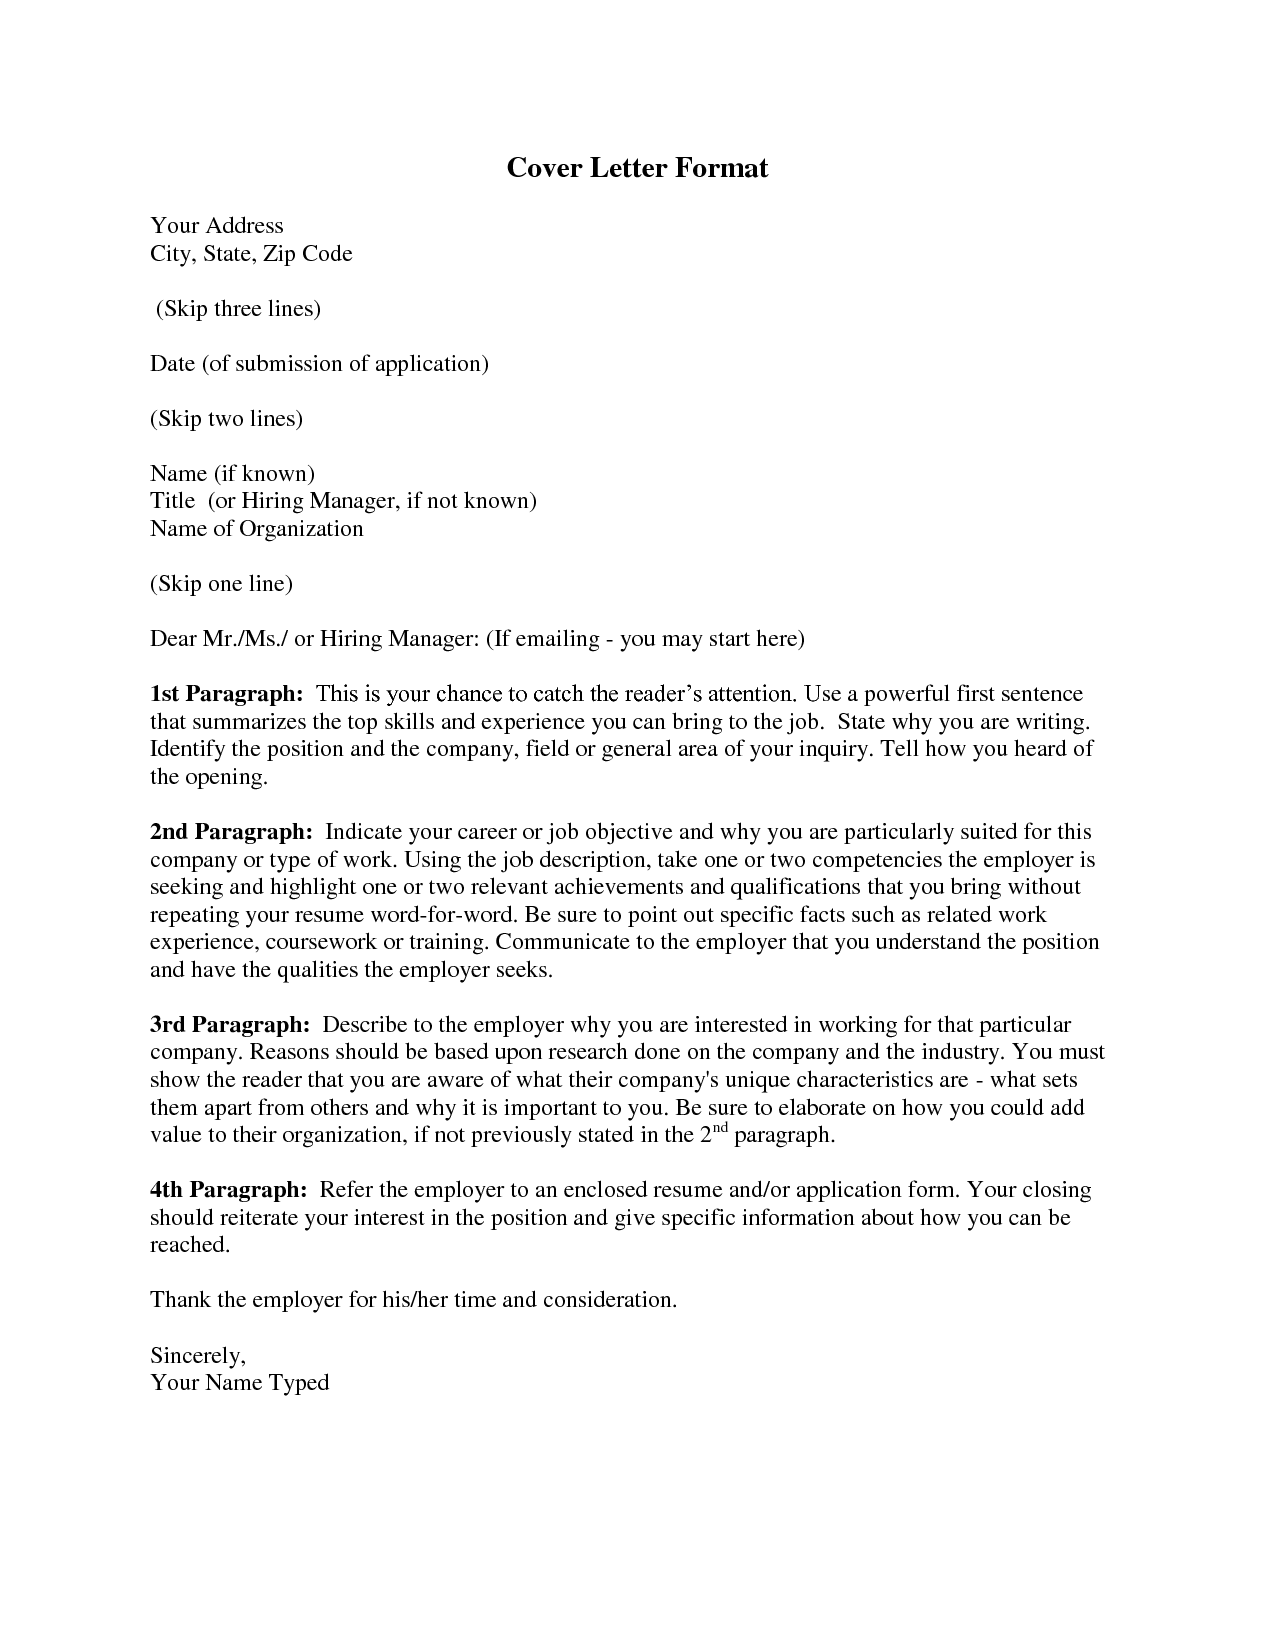 cover letter format for personalizing your cover letter